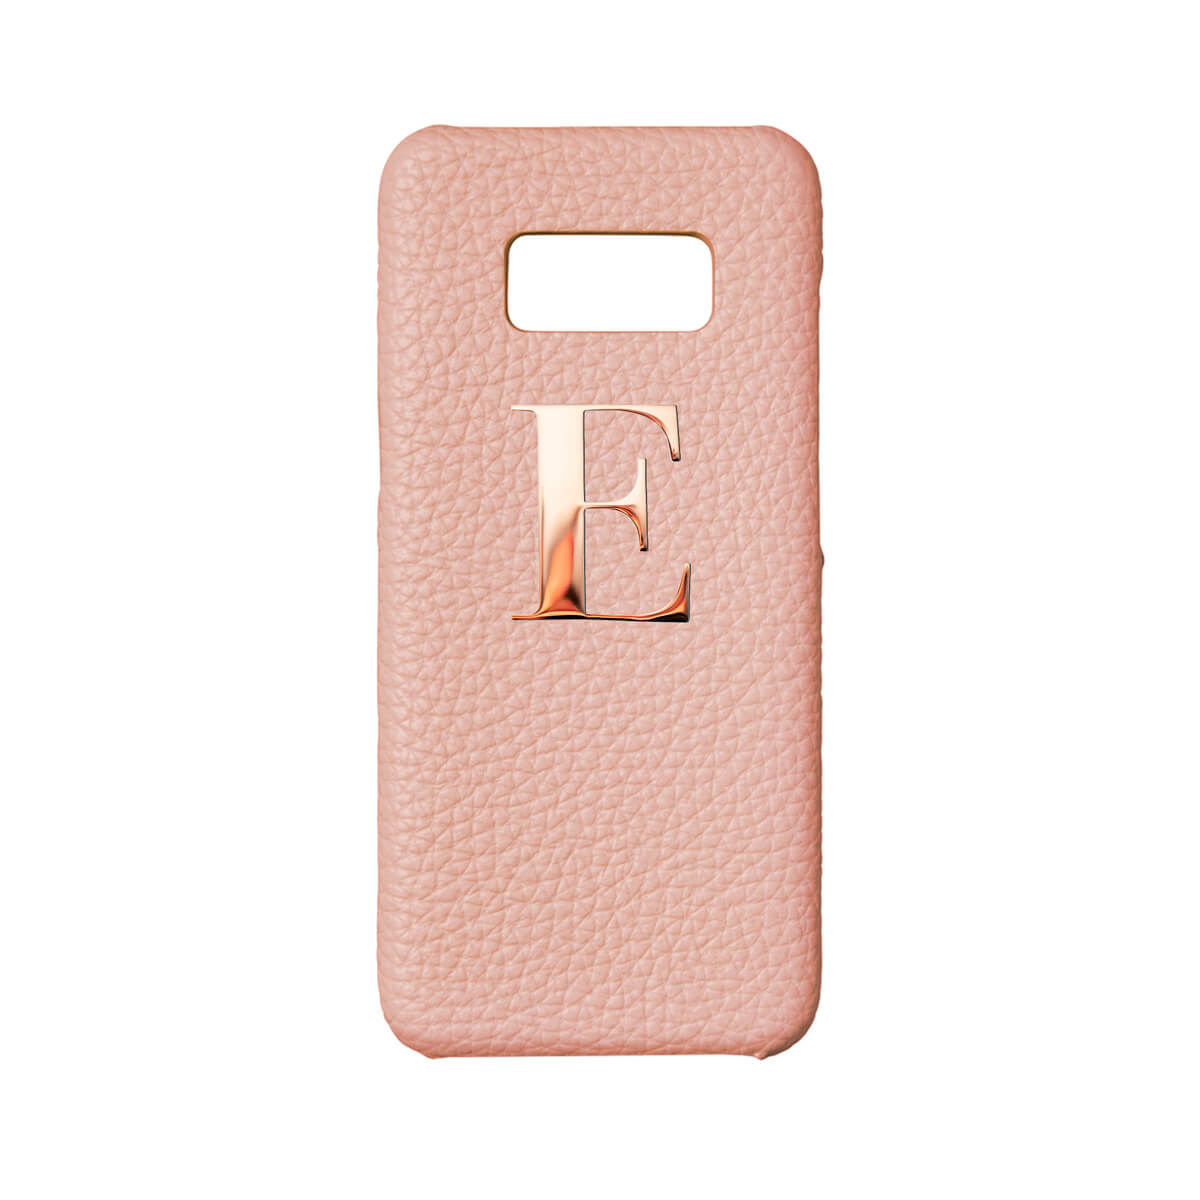 Blush Pink Phone Case (Samsung 8+)